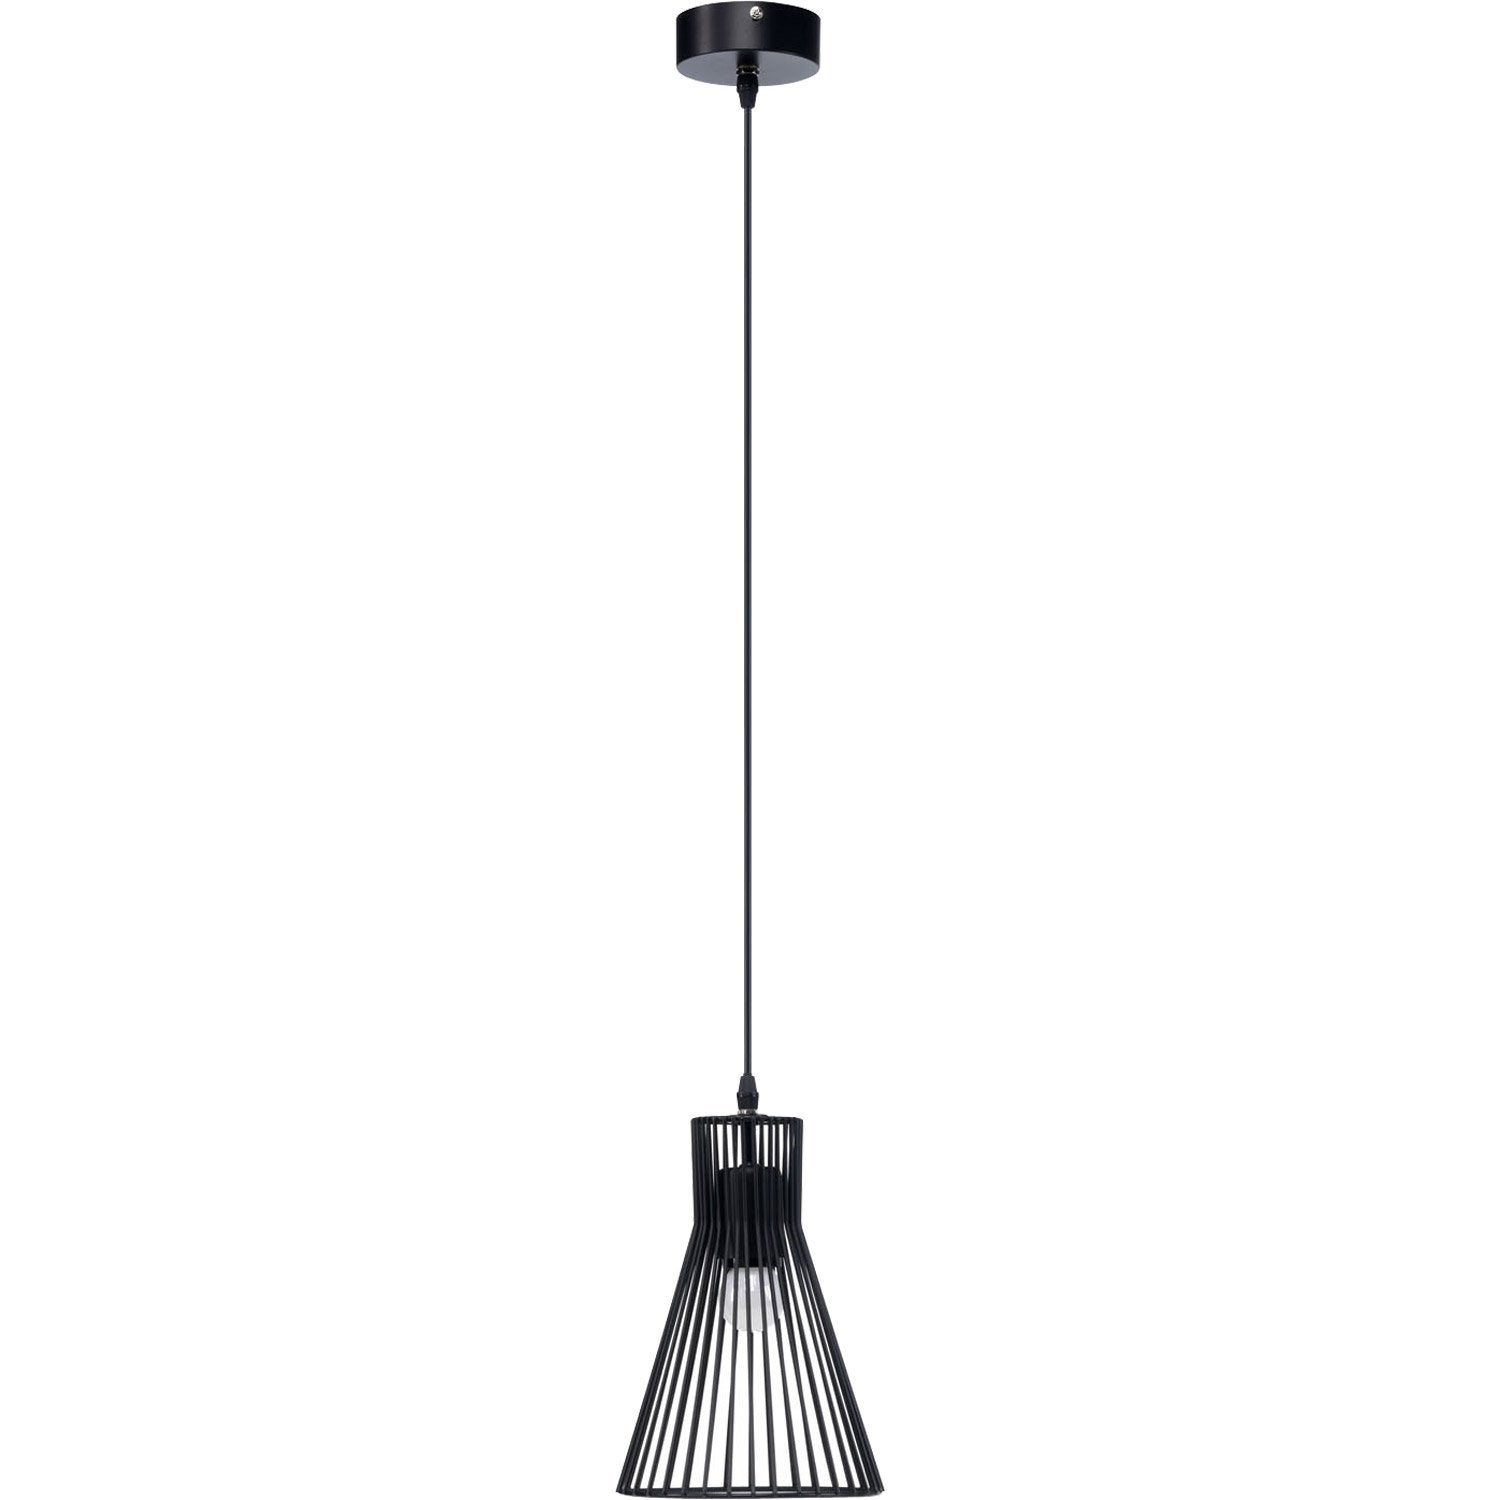 Suspension Pour Cuisine Design Good Luminaires Cuisine Design With